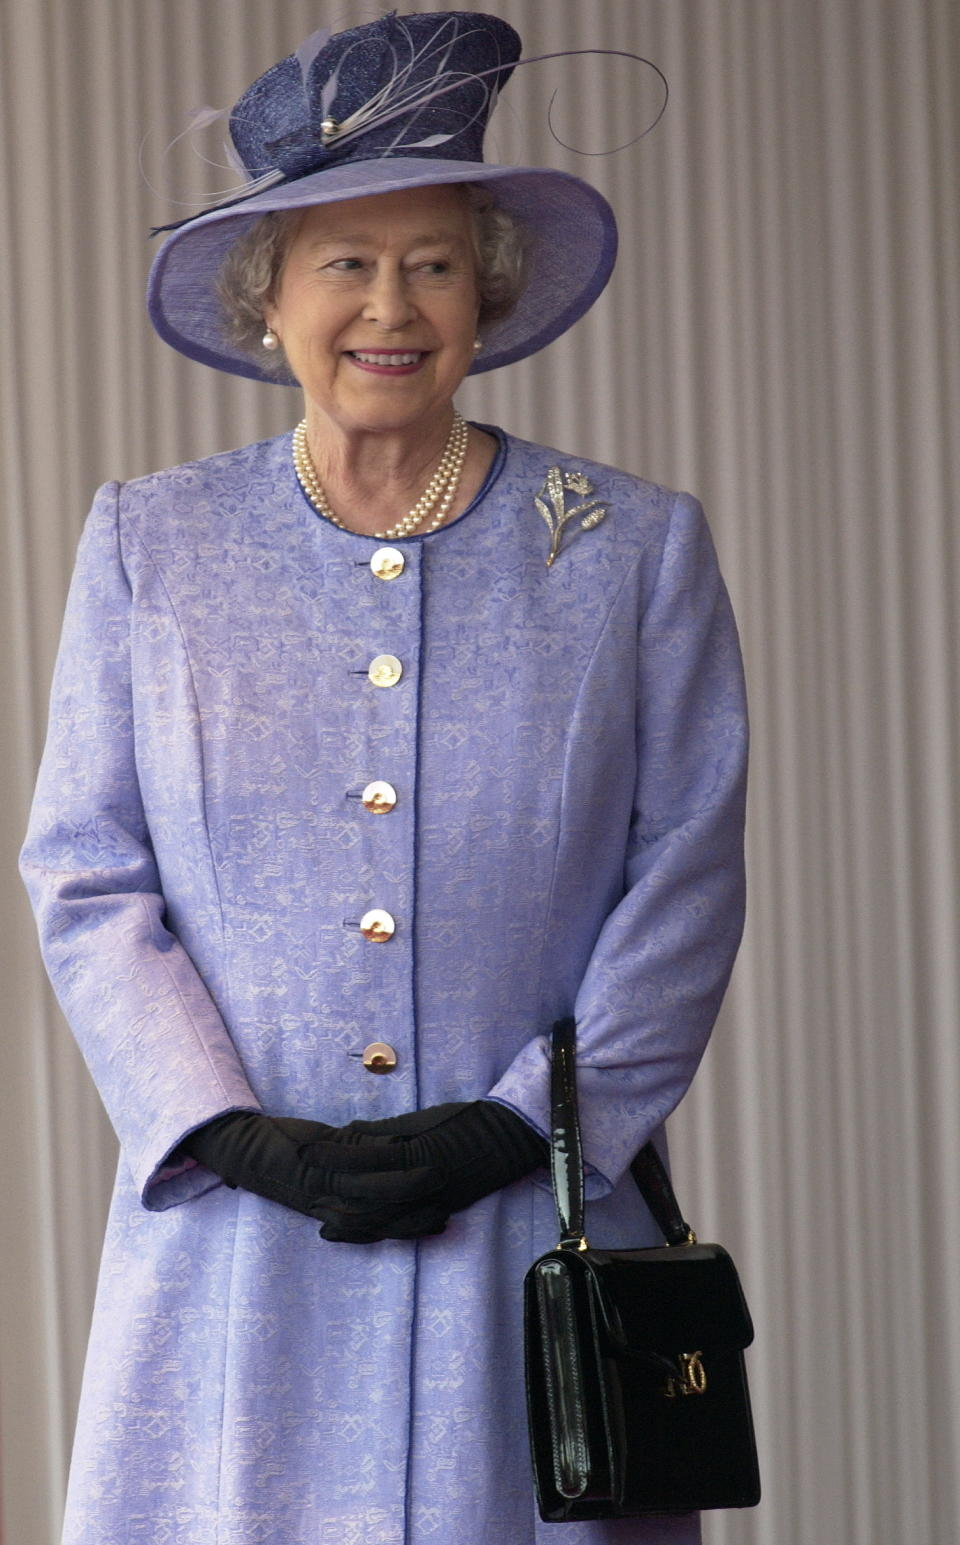 Queen Elizabeth II accessorises with a Launer bag as she meets the American President at Buckingham Palace in 2003